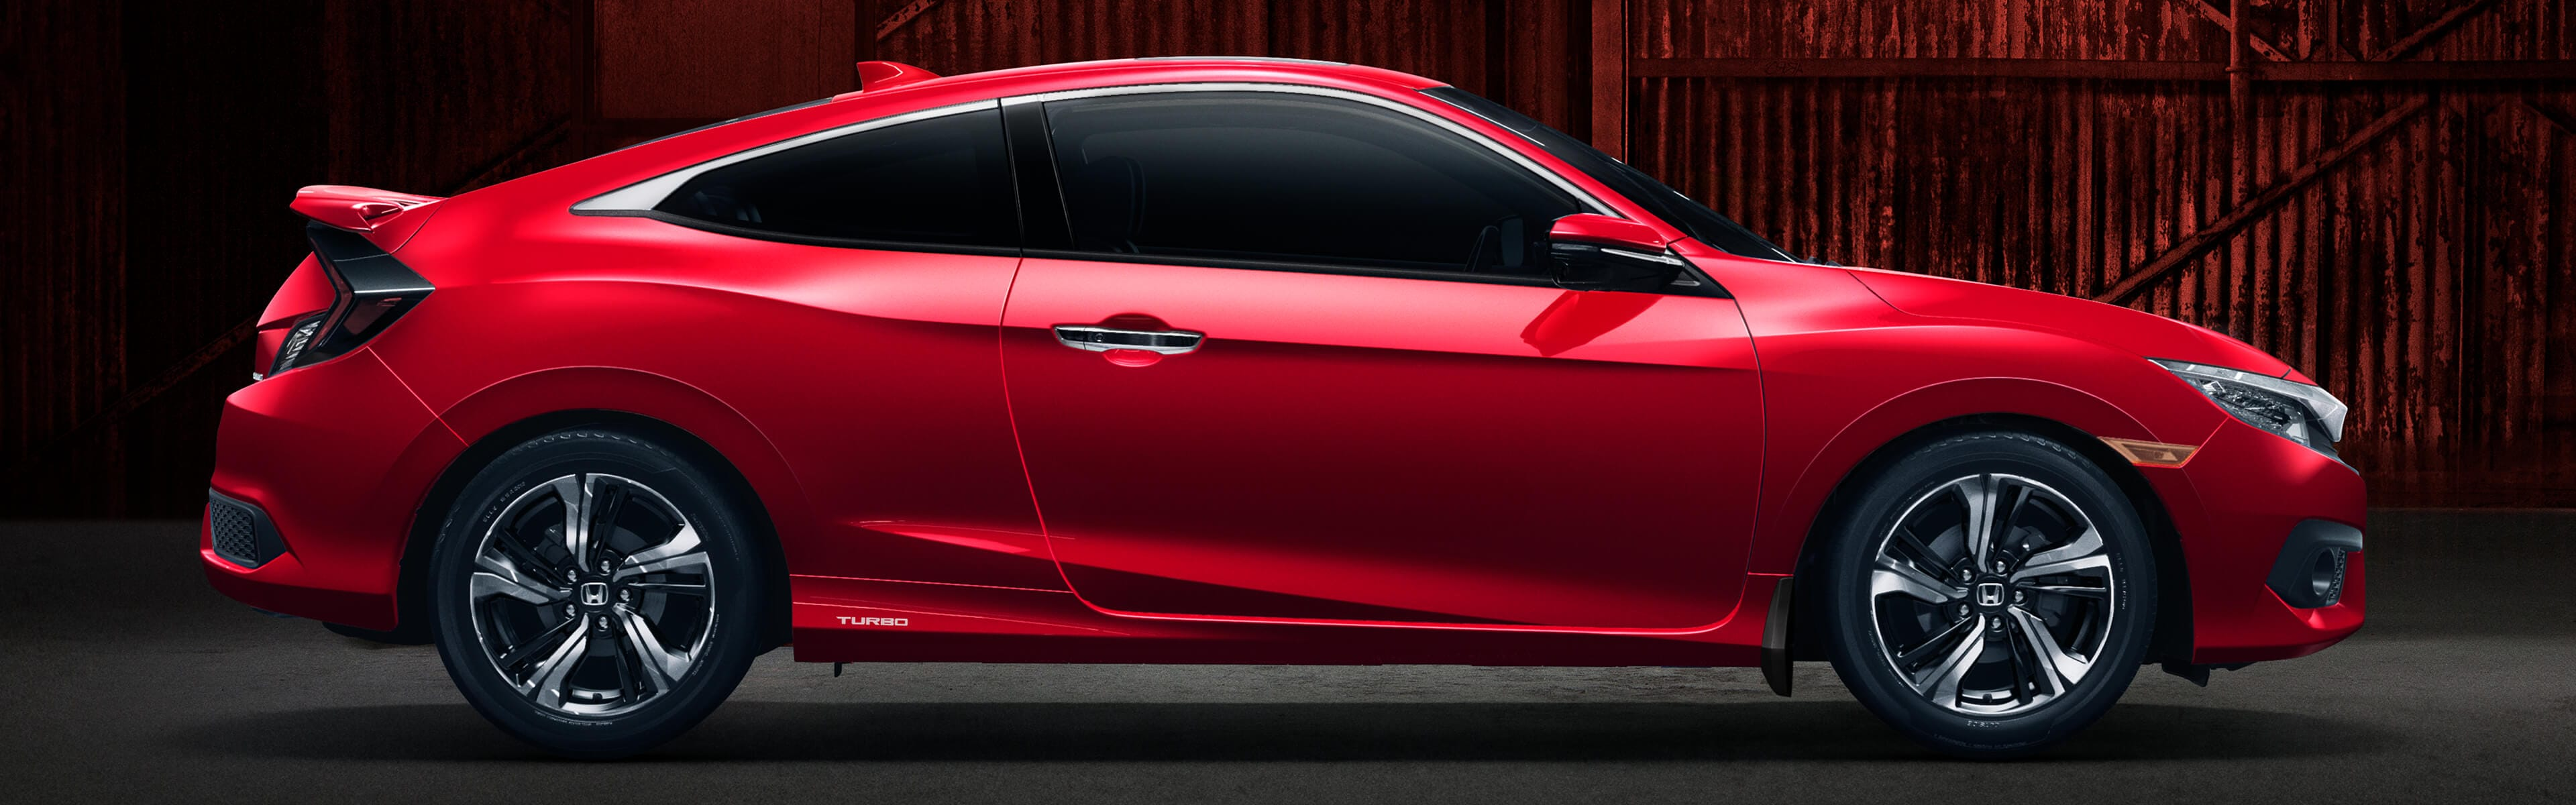 2018 Civic Coupe side profile